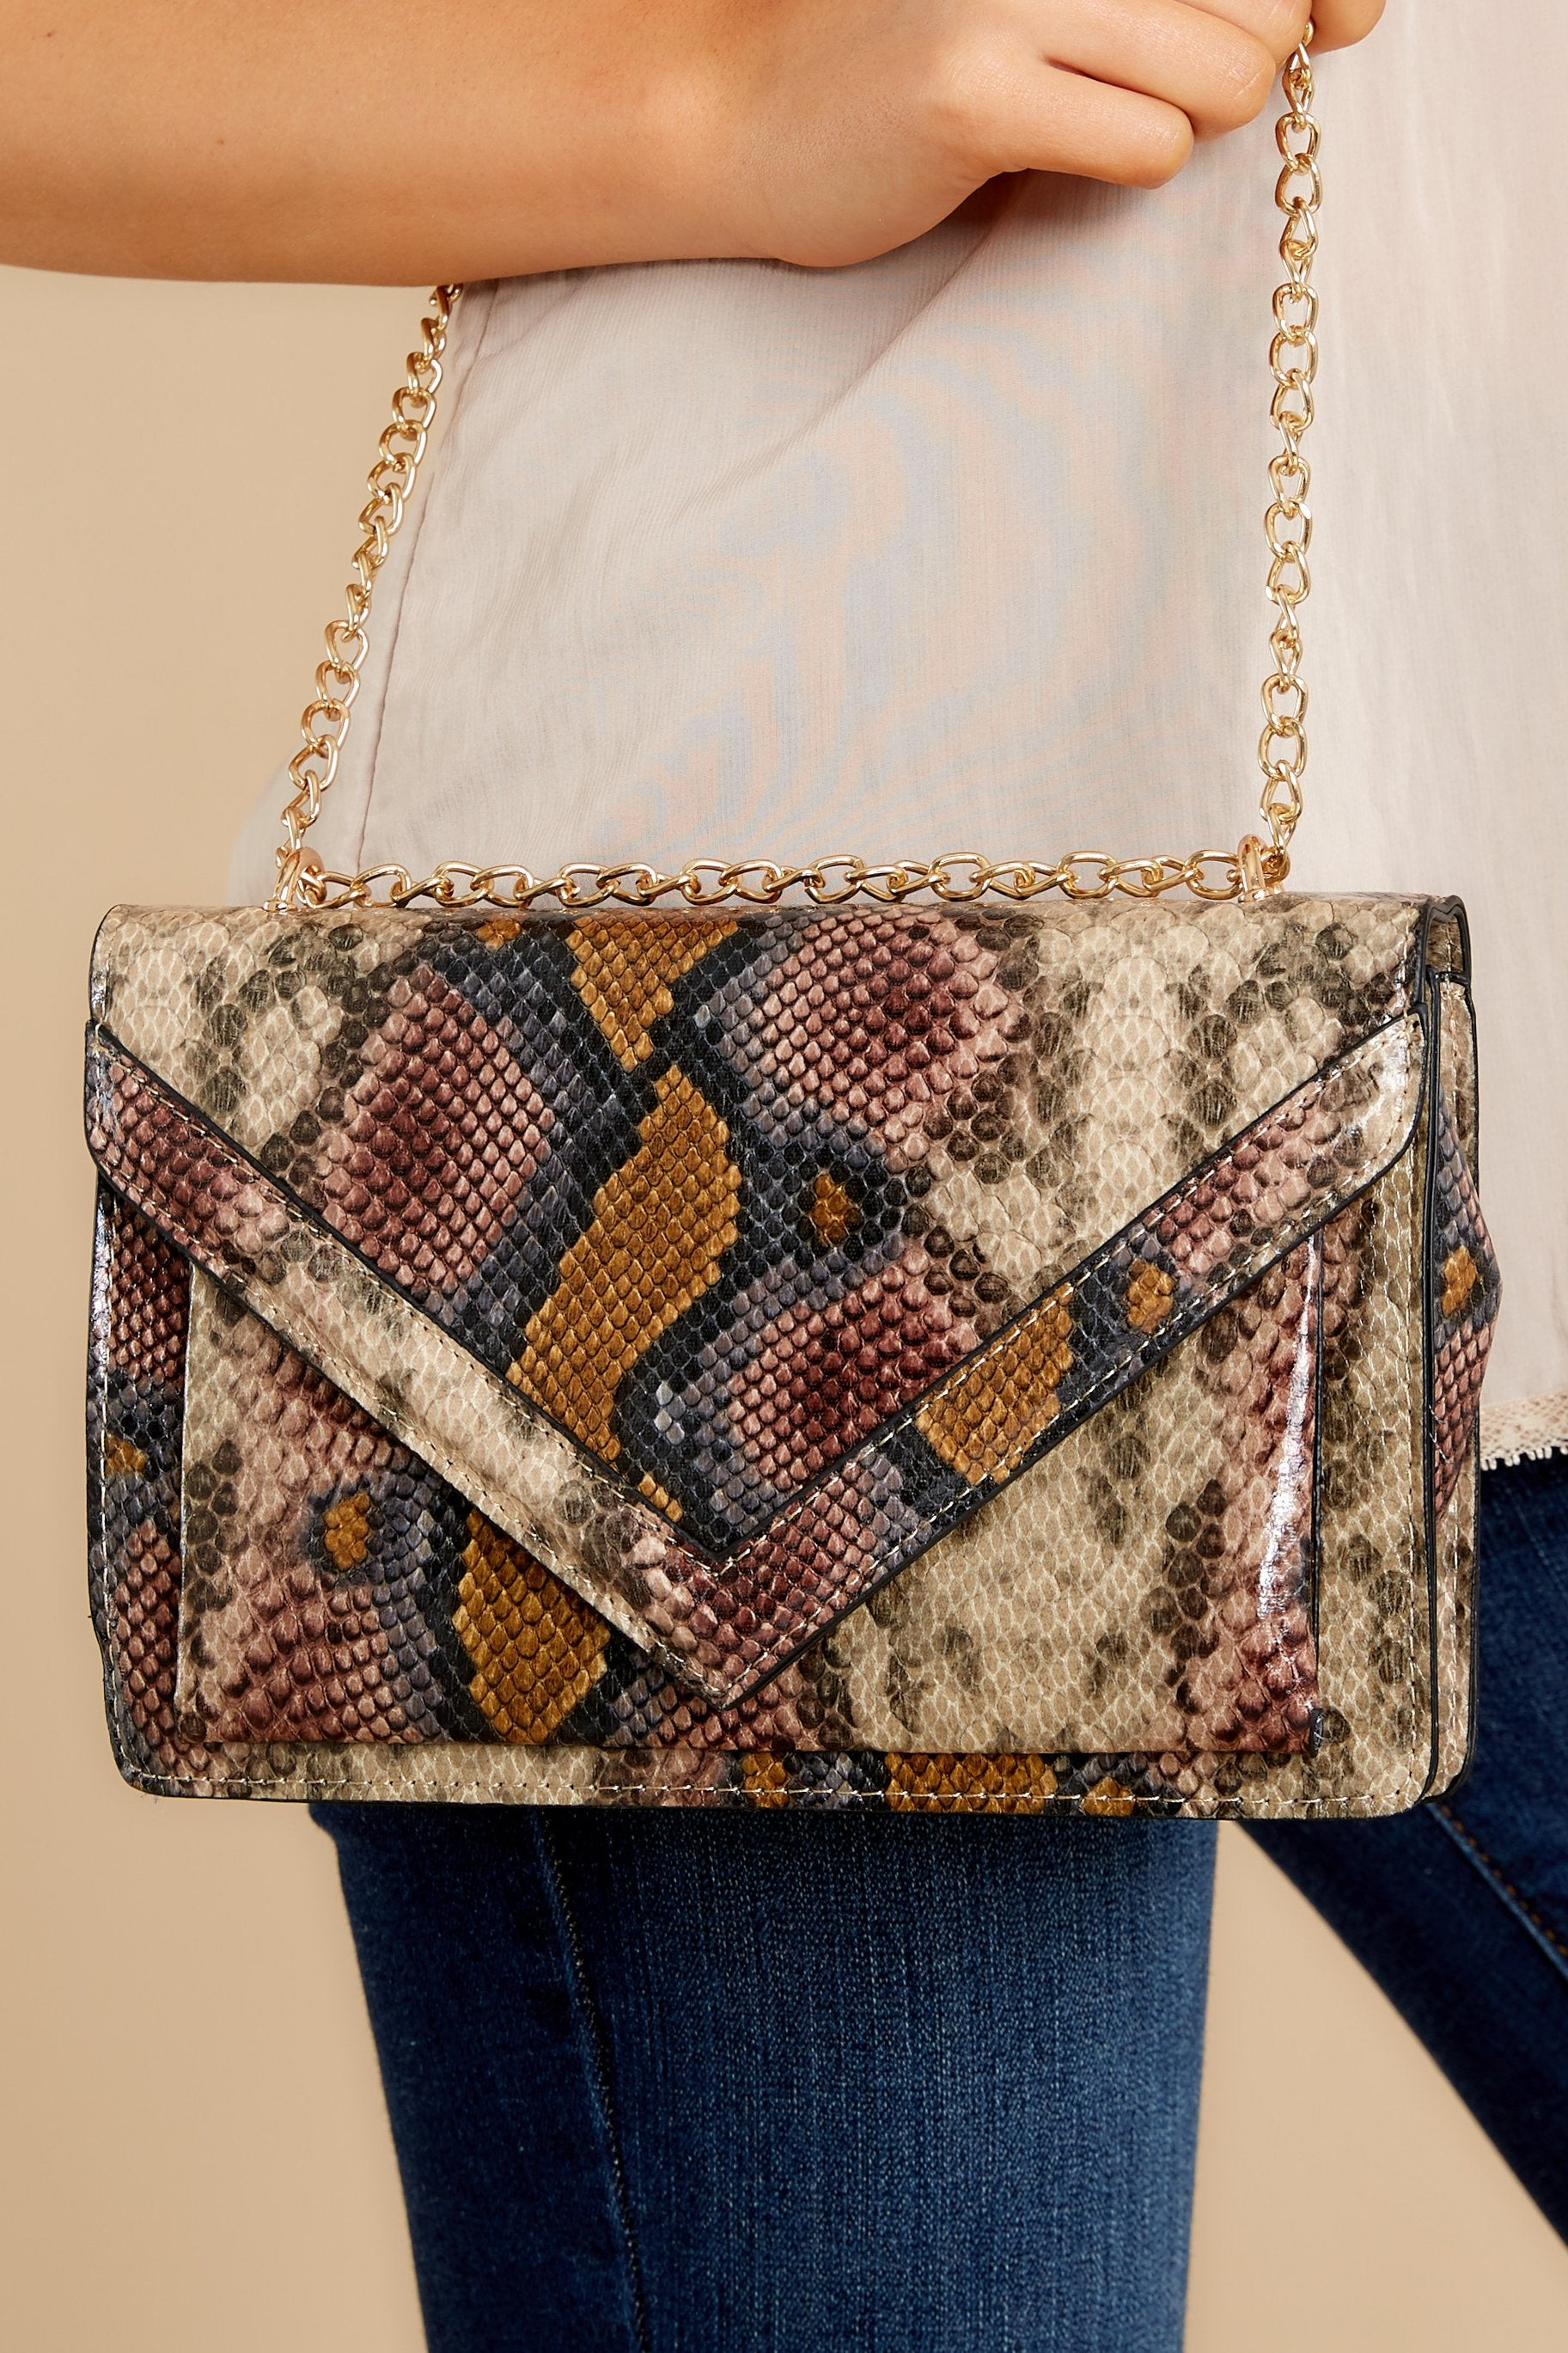 Marvel The Masses Tan Multi Snakeskin Purse Beige (2256097312864 B-JO-B5-21445) photo